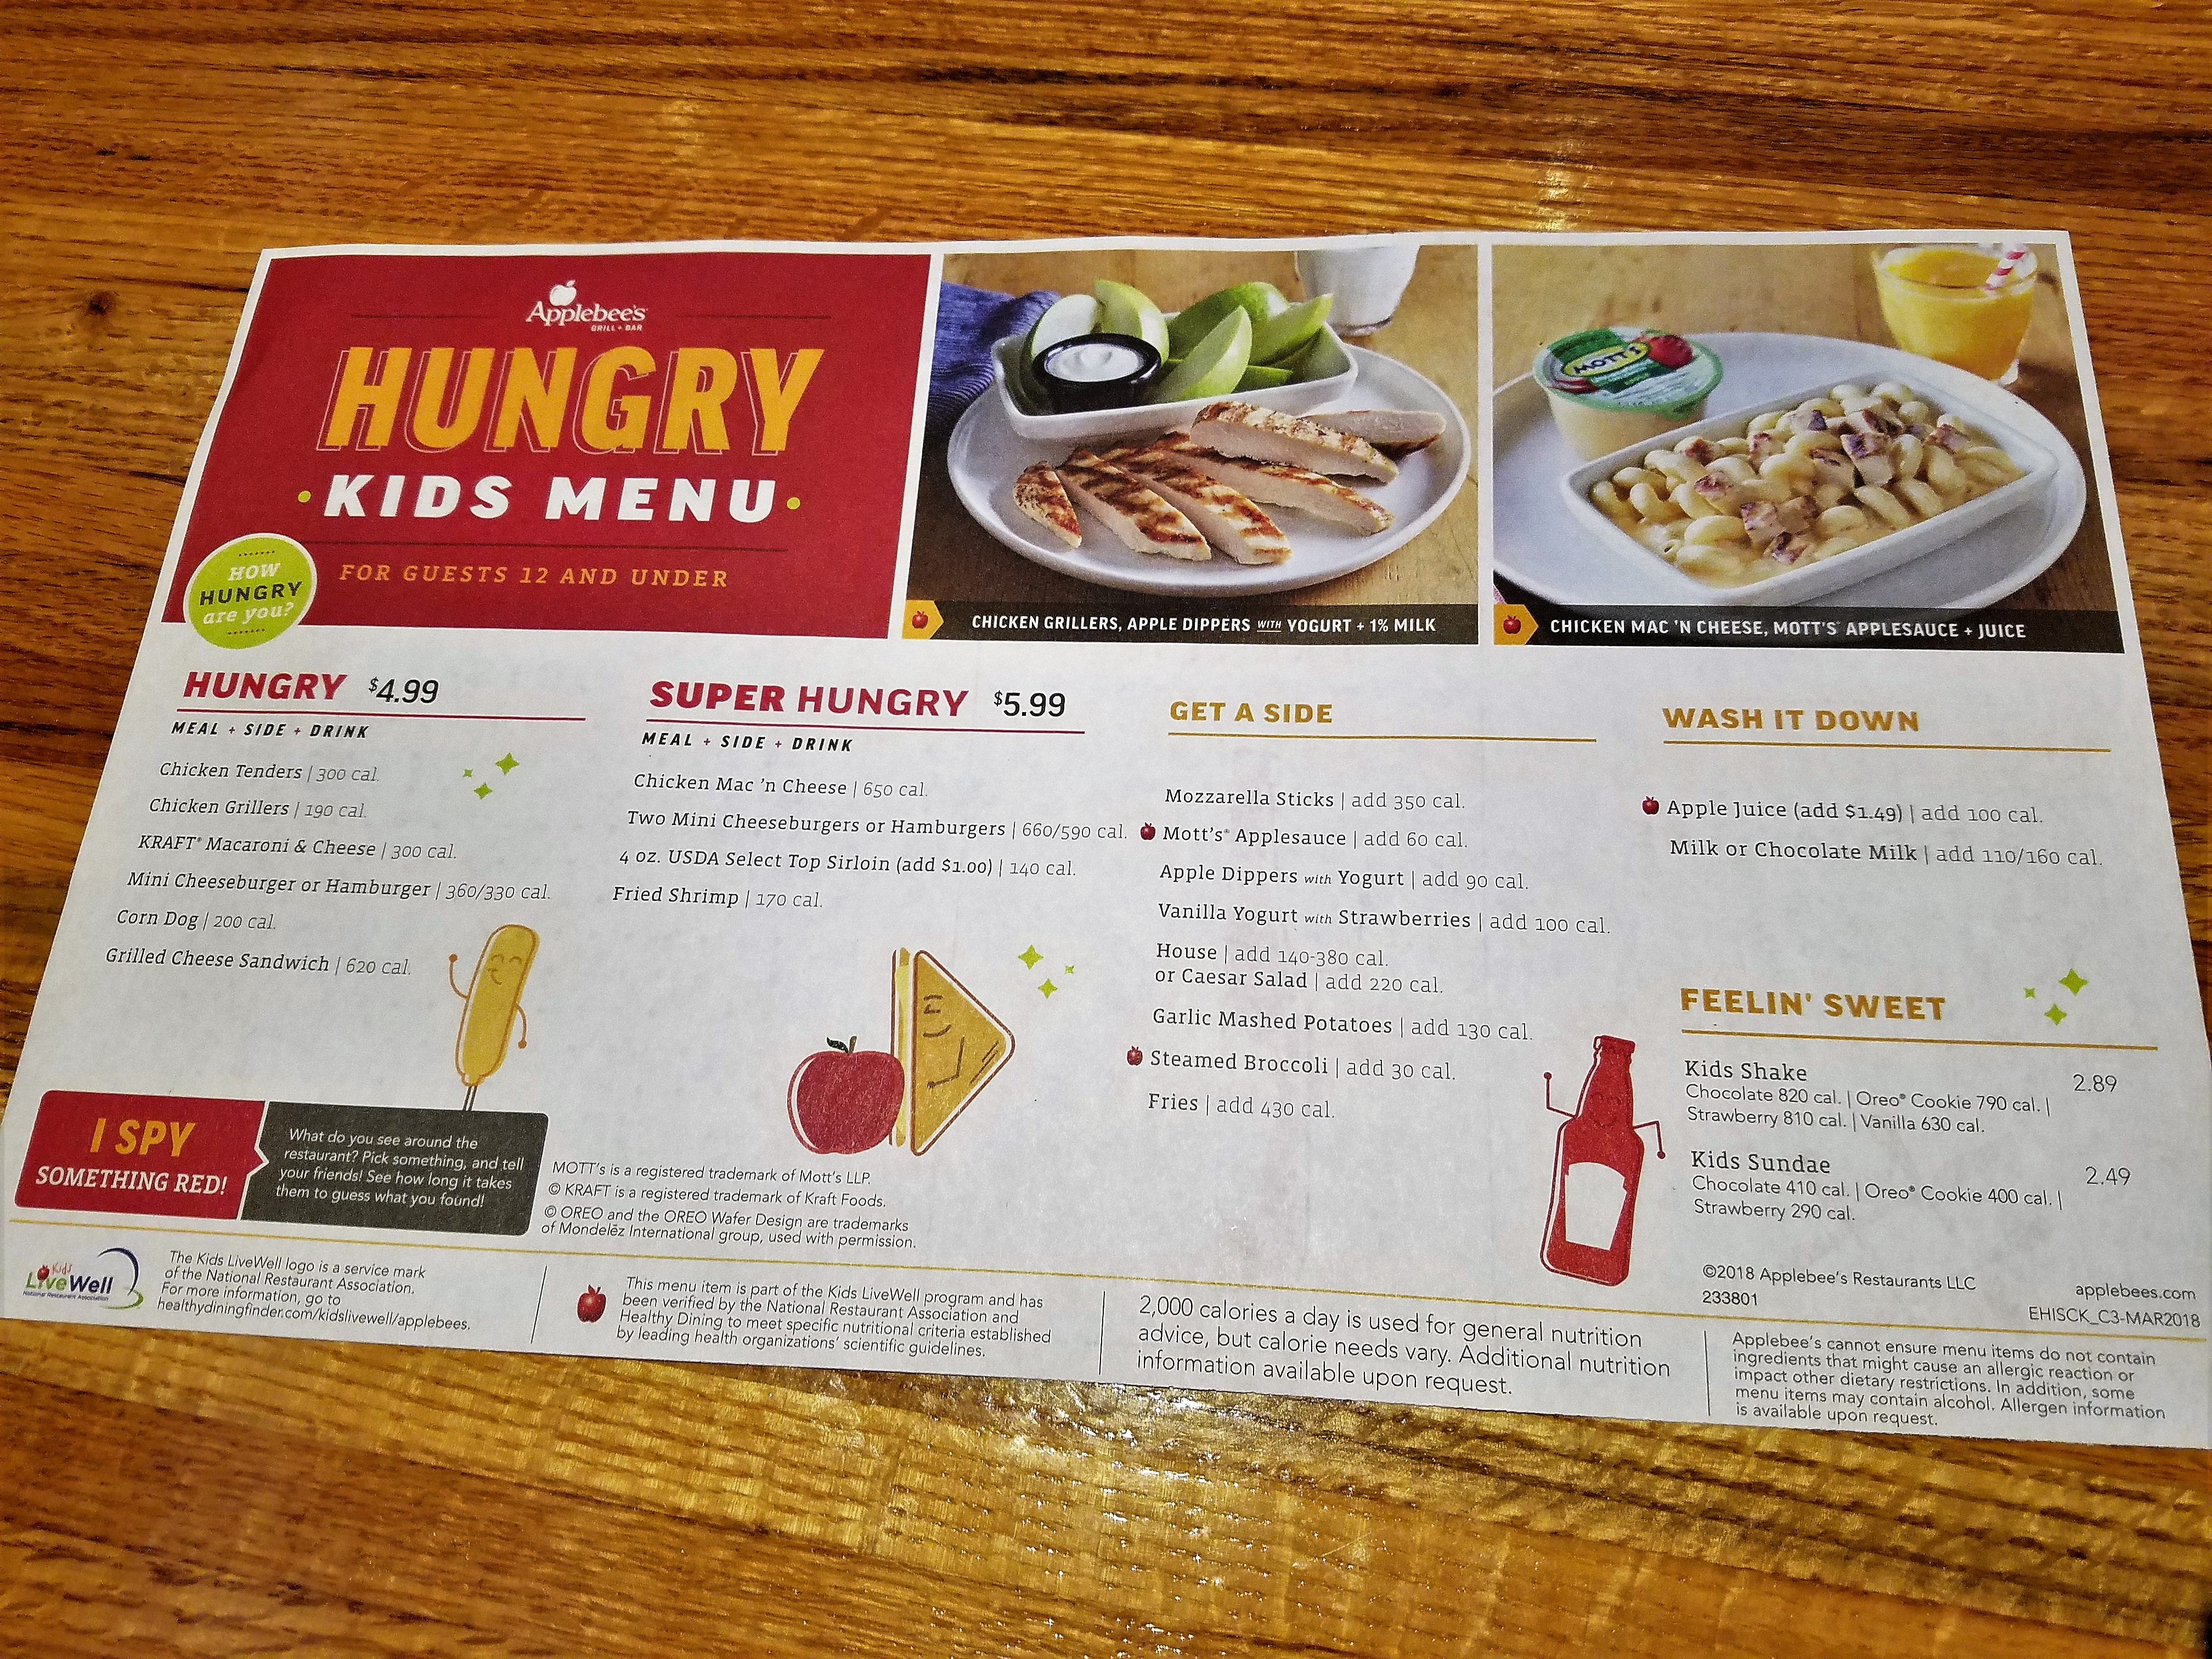 Idyllic Are Y Going To Enjoy Menu I Have To Say That Hasdone A Job Making Sure That Family Experience Issomething New Comfort Food Items At Your Neighborhood nice food Apple Bees Menu